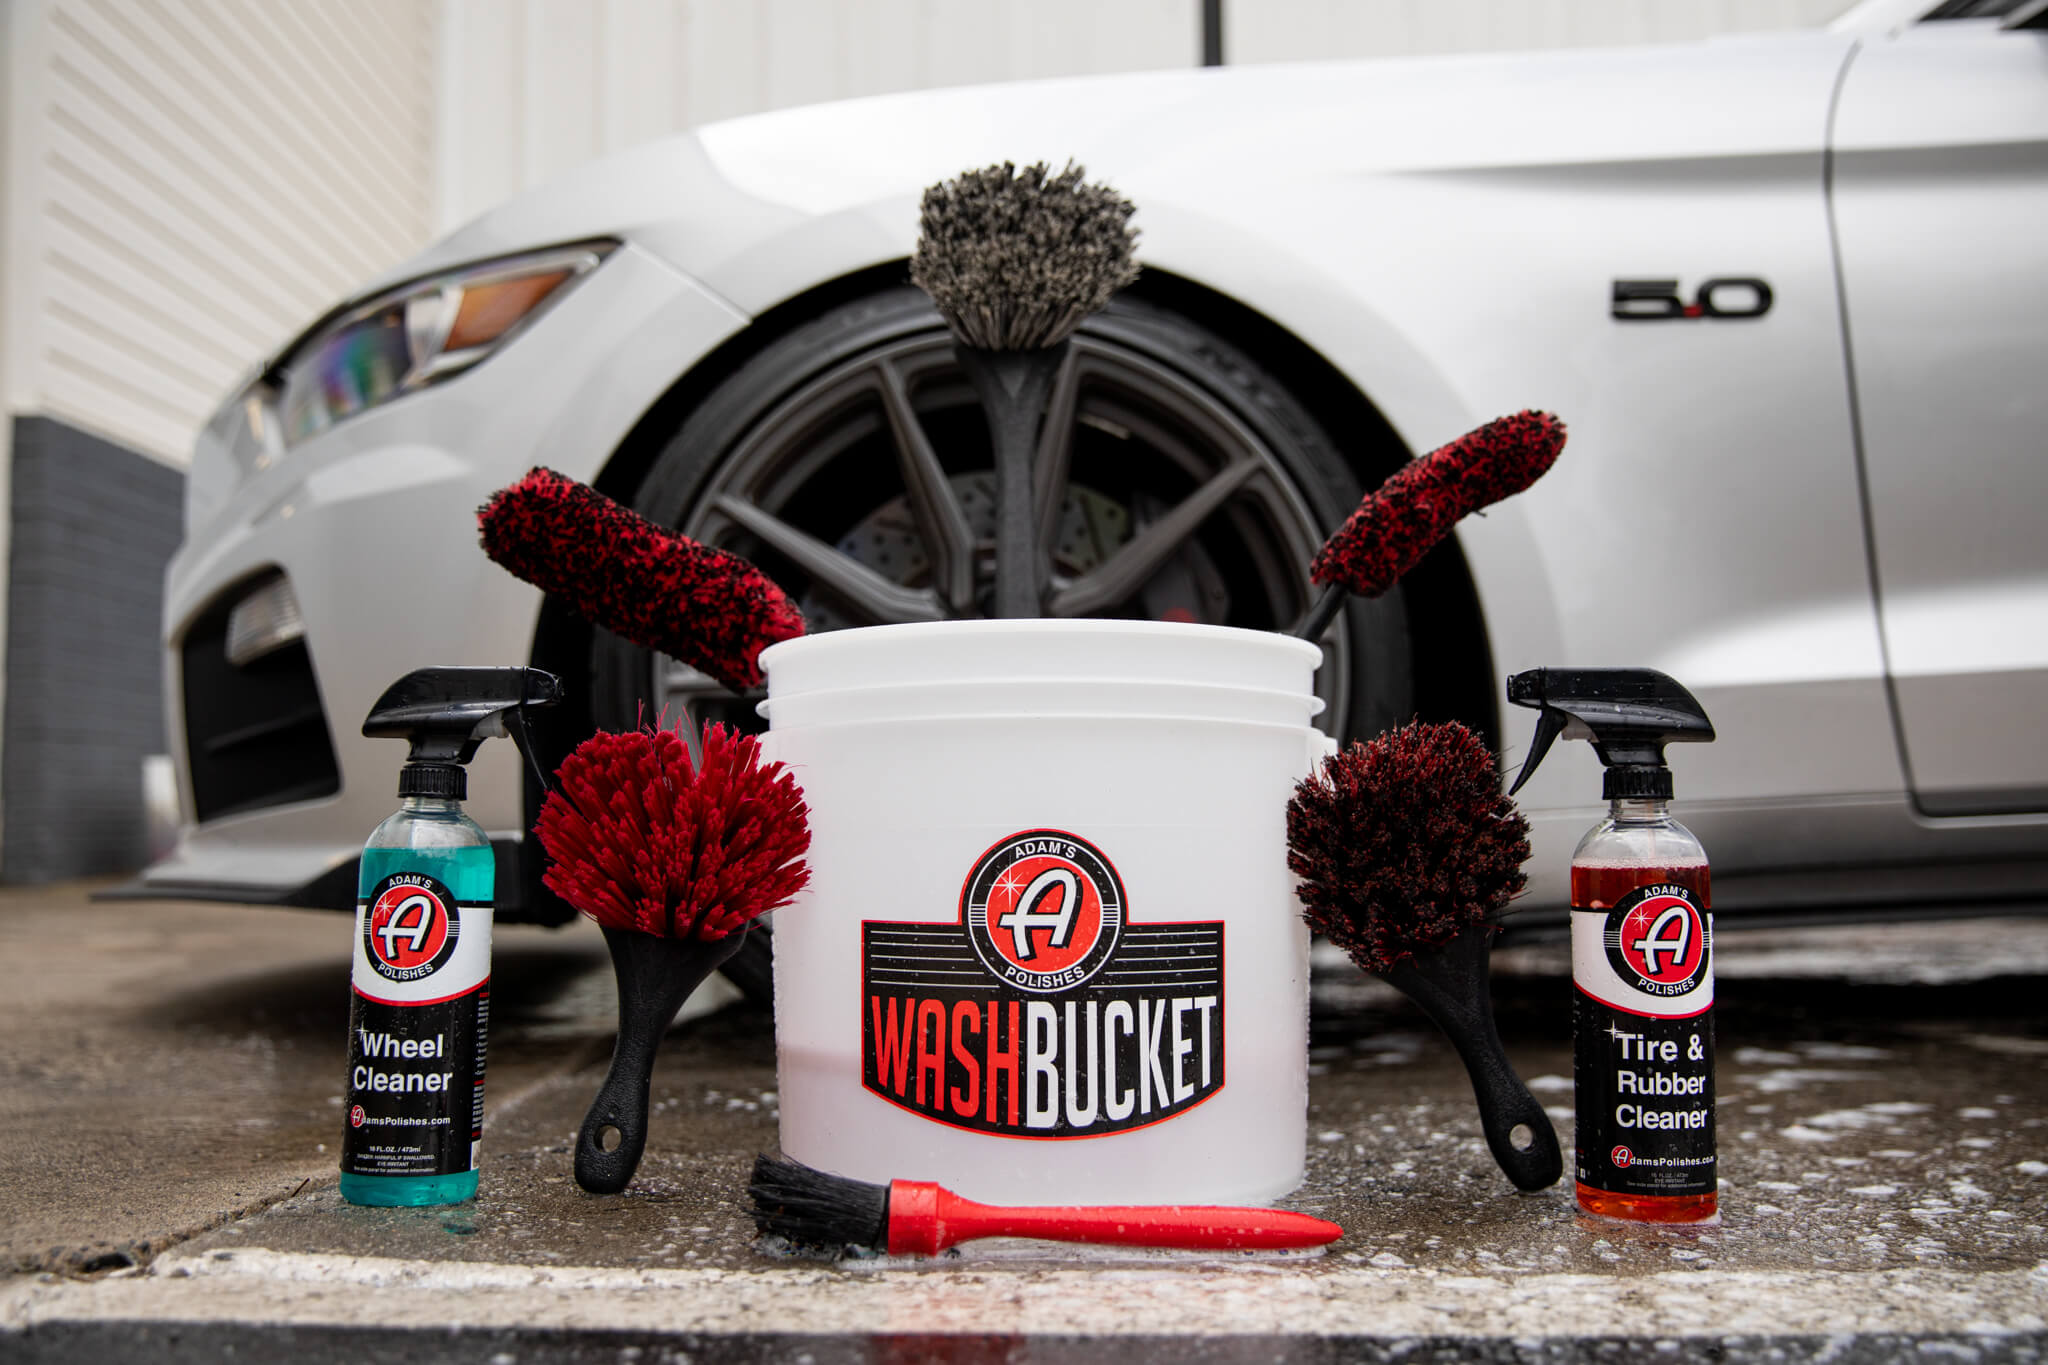 Cleaning your wheels and tires with Adam's Polishes